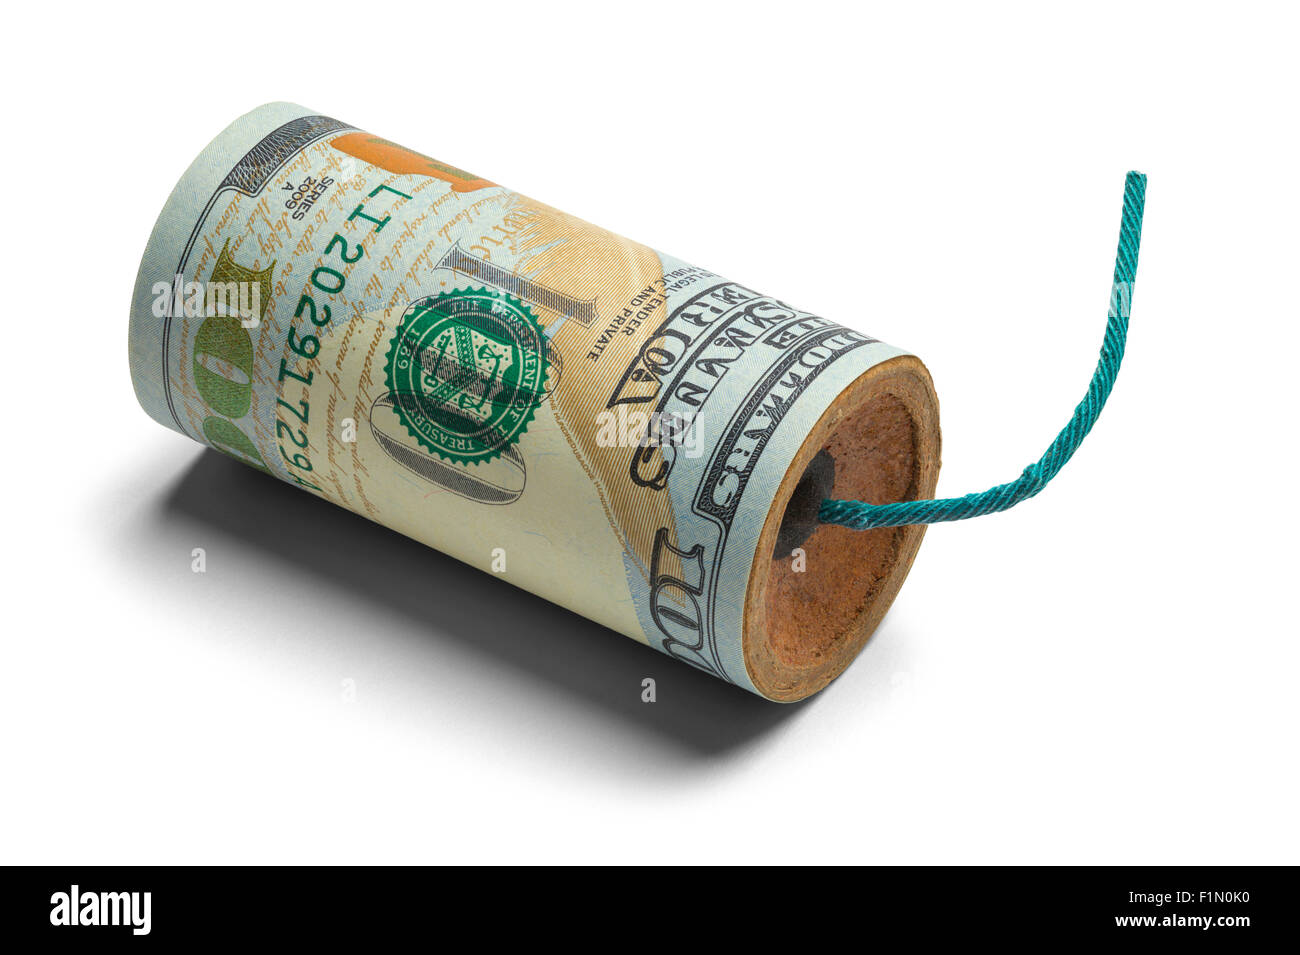 Hundred Dollar Bill Bomb with Fuse Isolated on White Background. - Stock Image